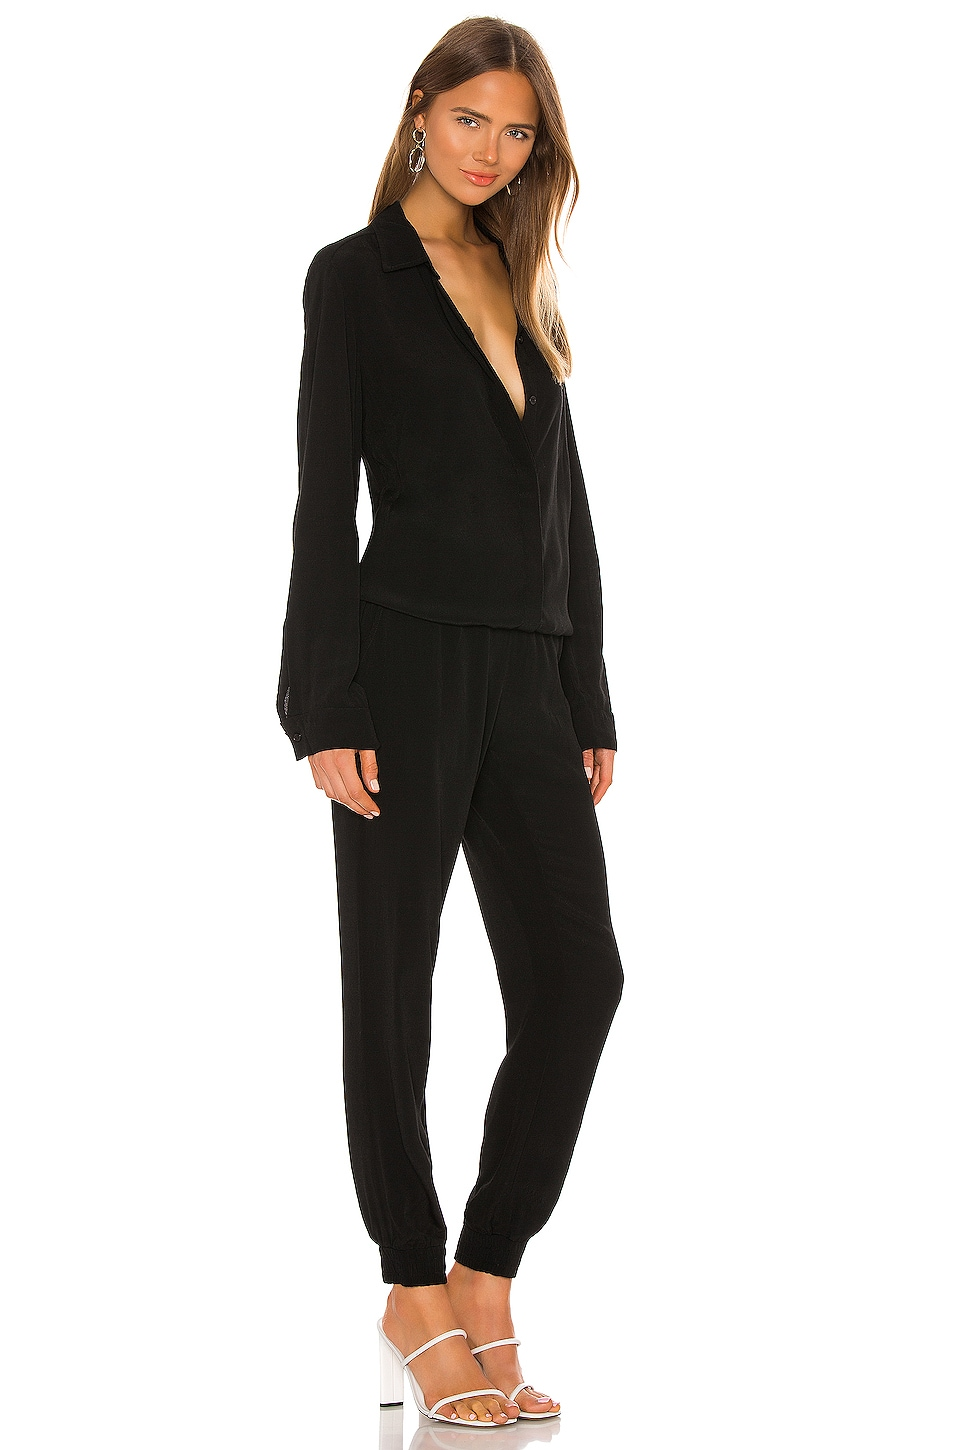 Images of Long Sleeve Jumpsuit - Reikian